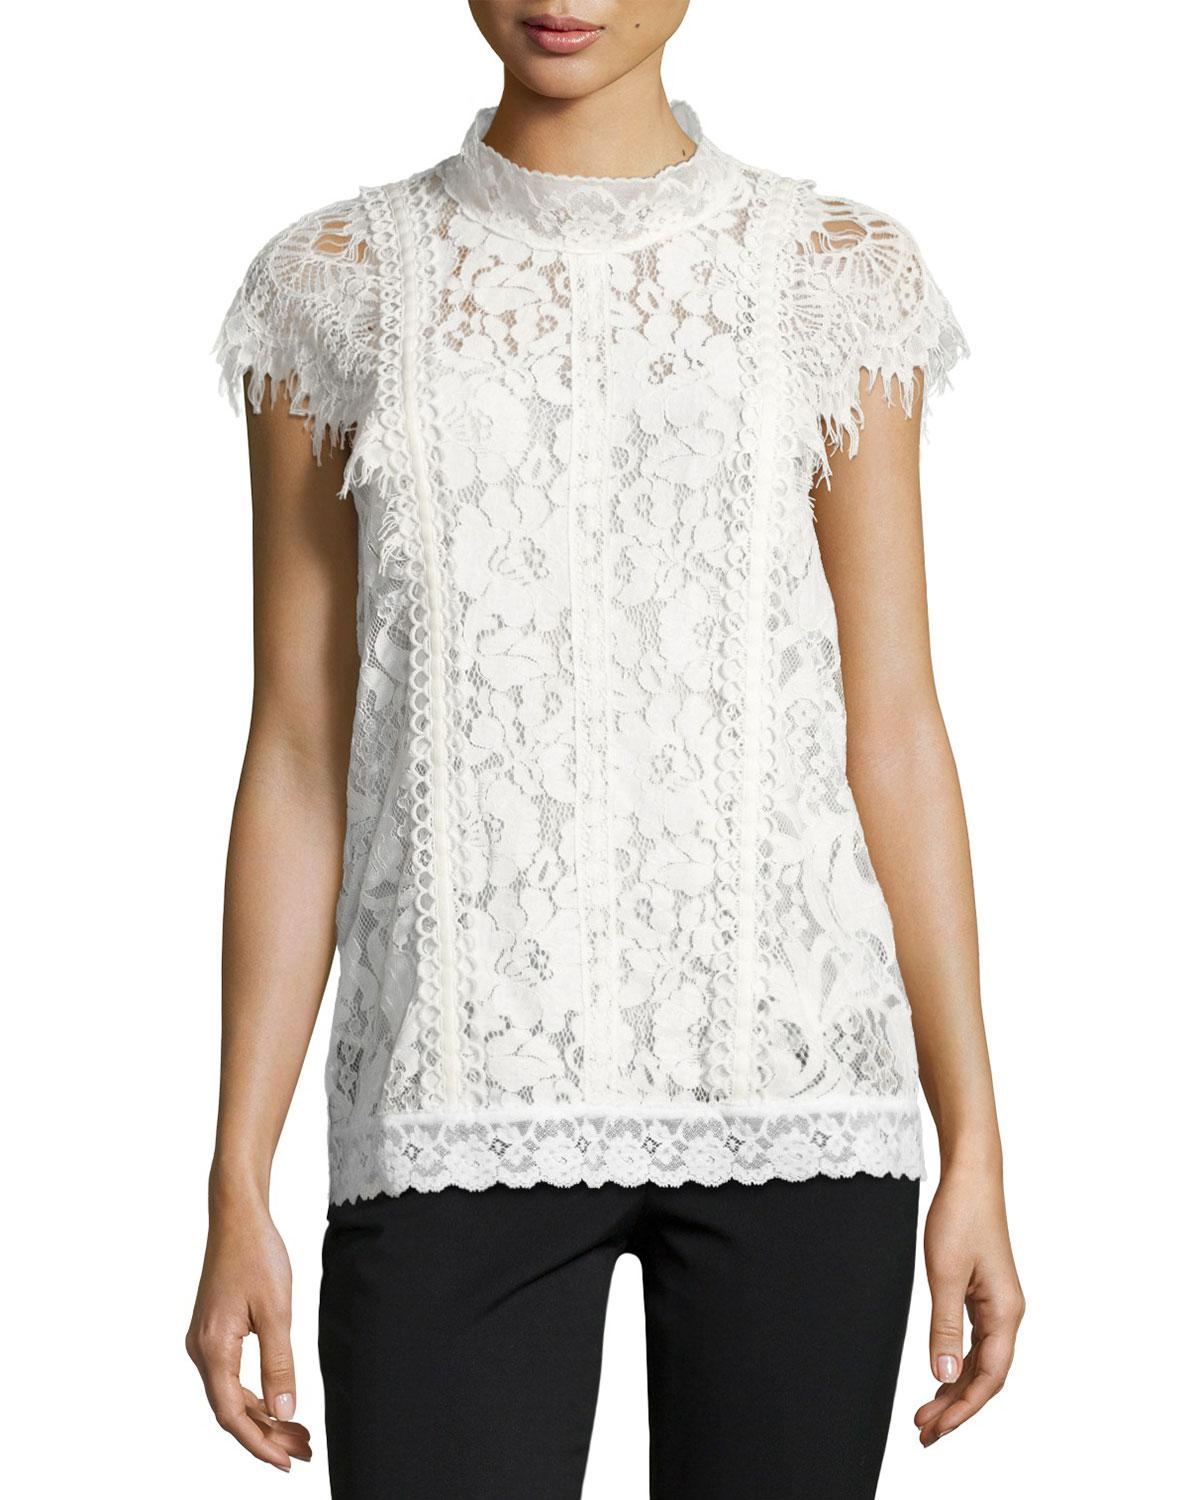 Lyst - Burberry Lace Cap-sleeve Top in White